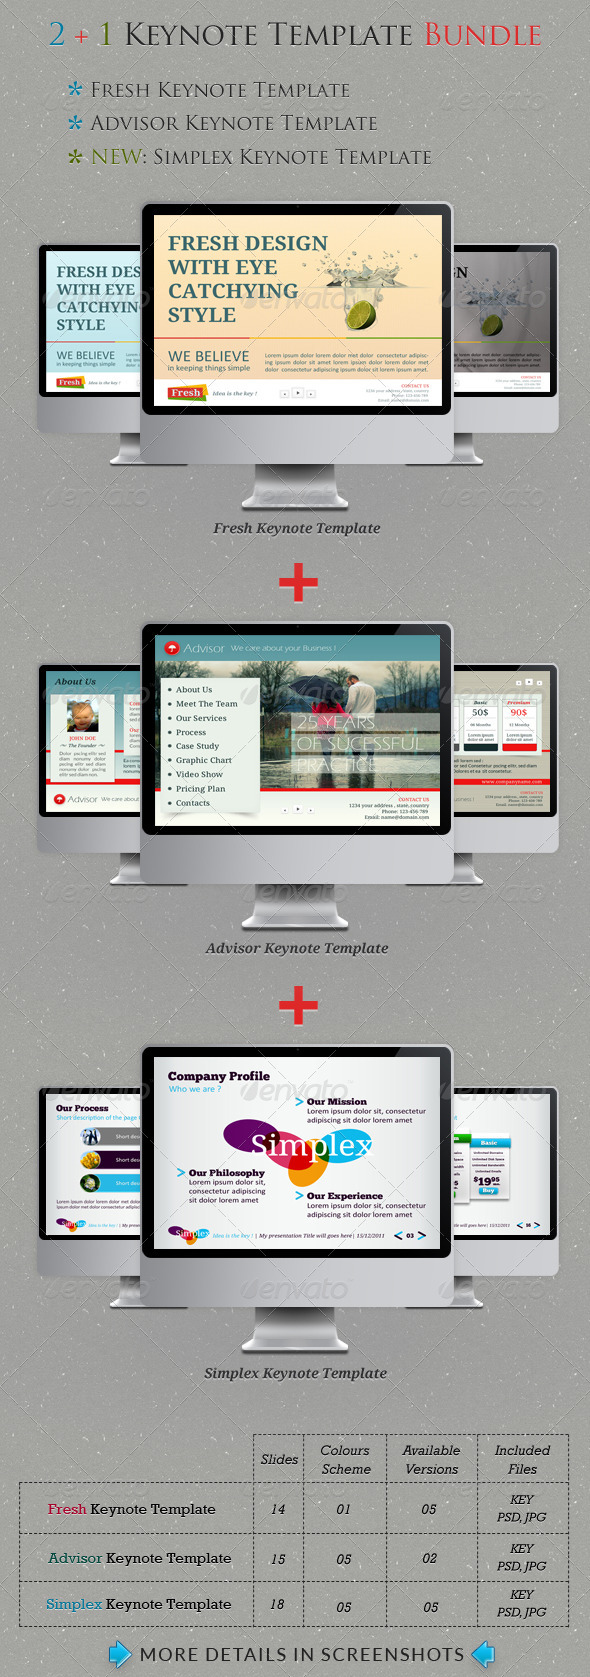 2+1 Keynote Templates Bundle - Presentation Templates